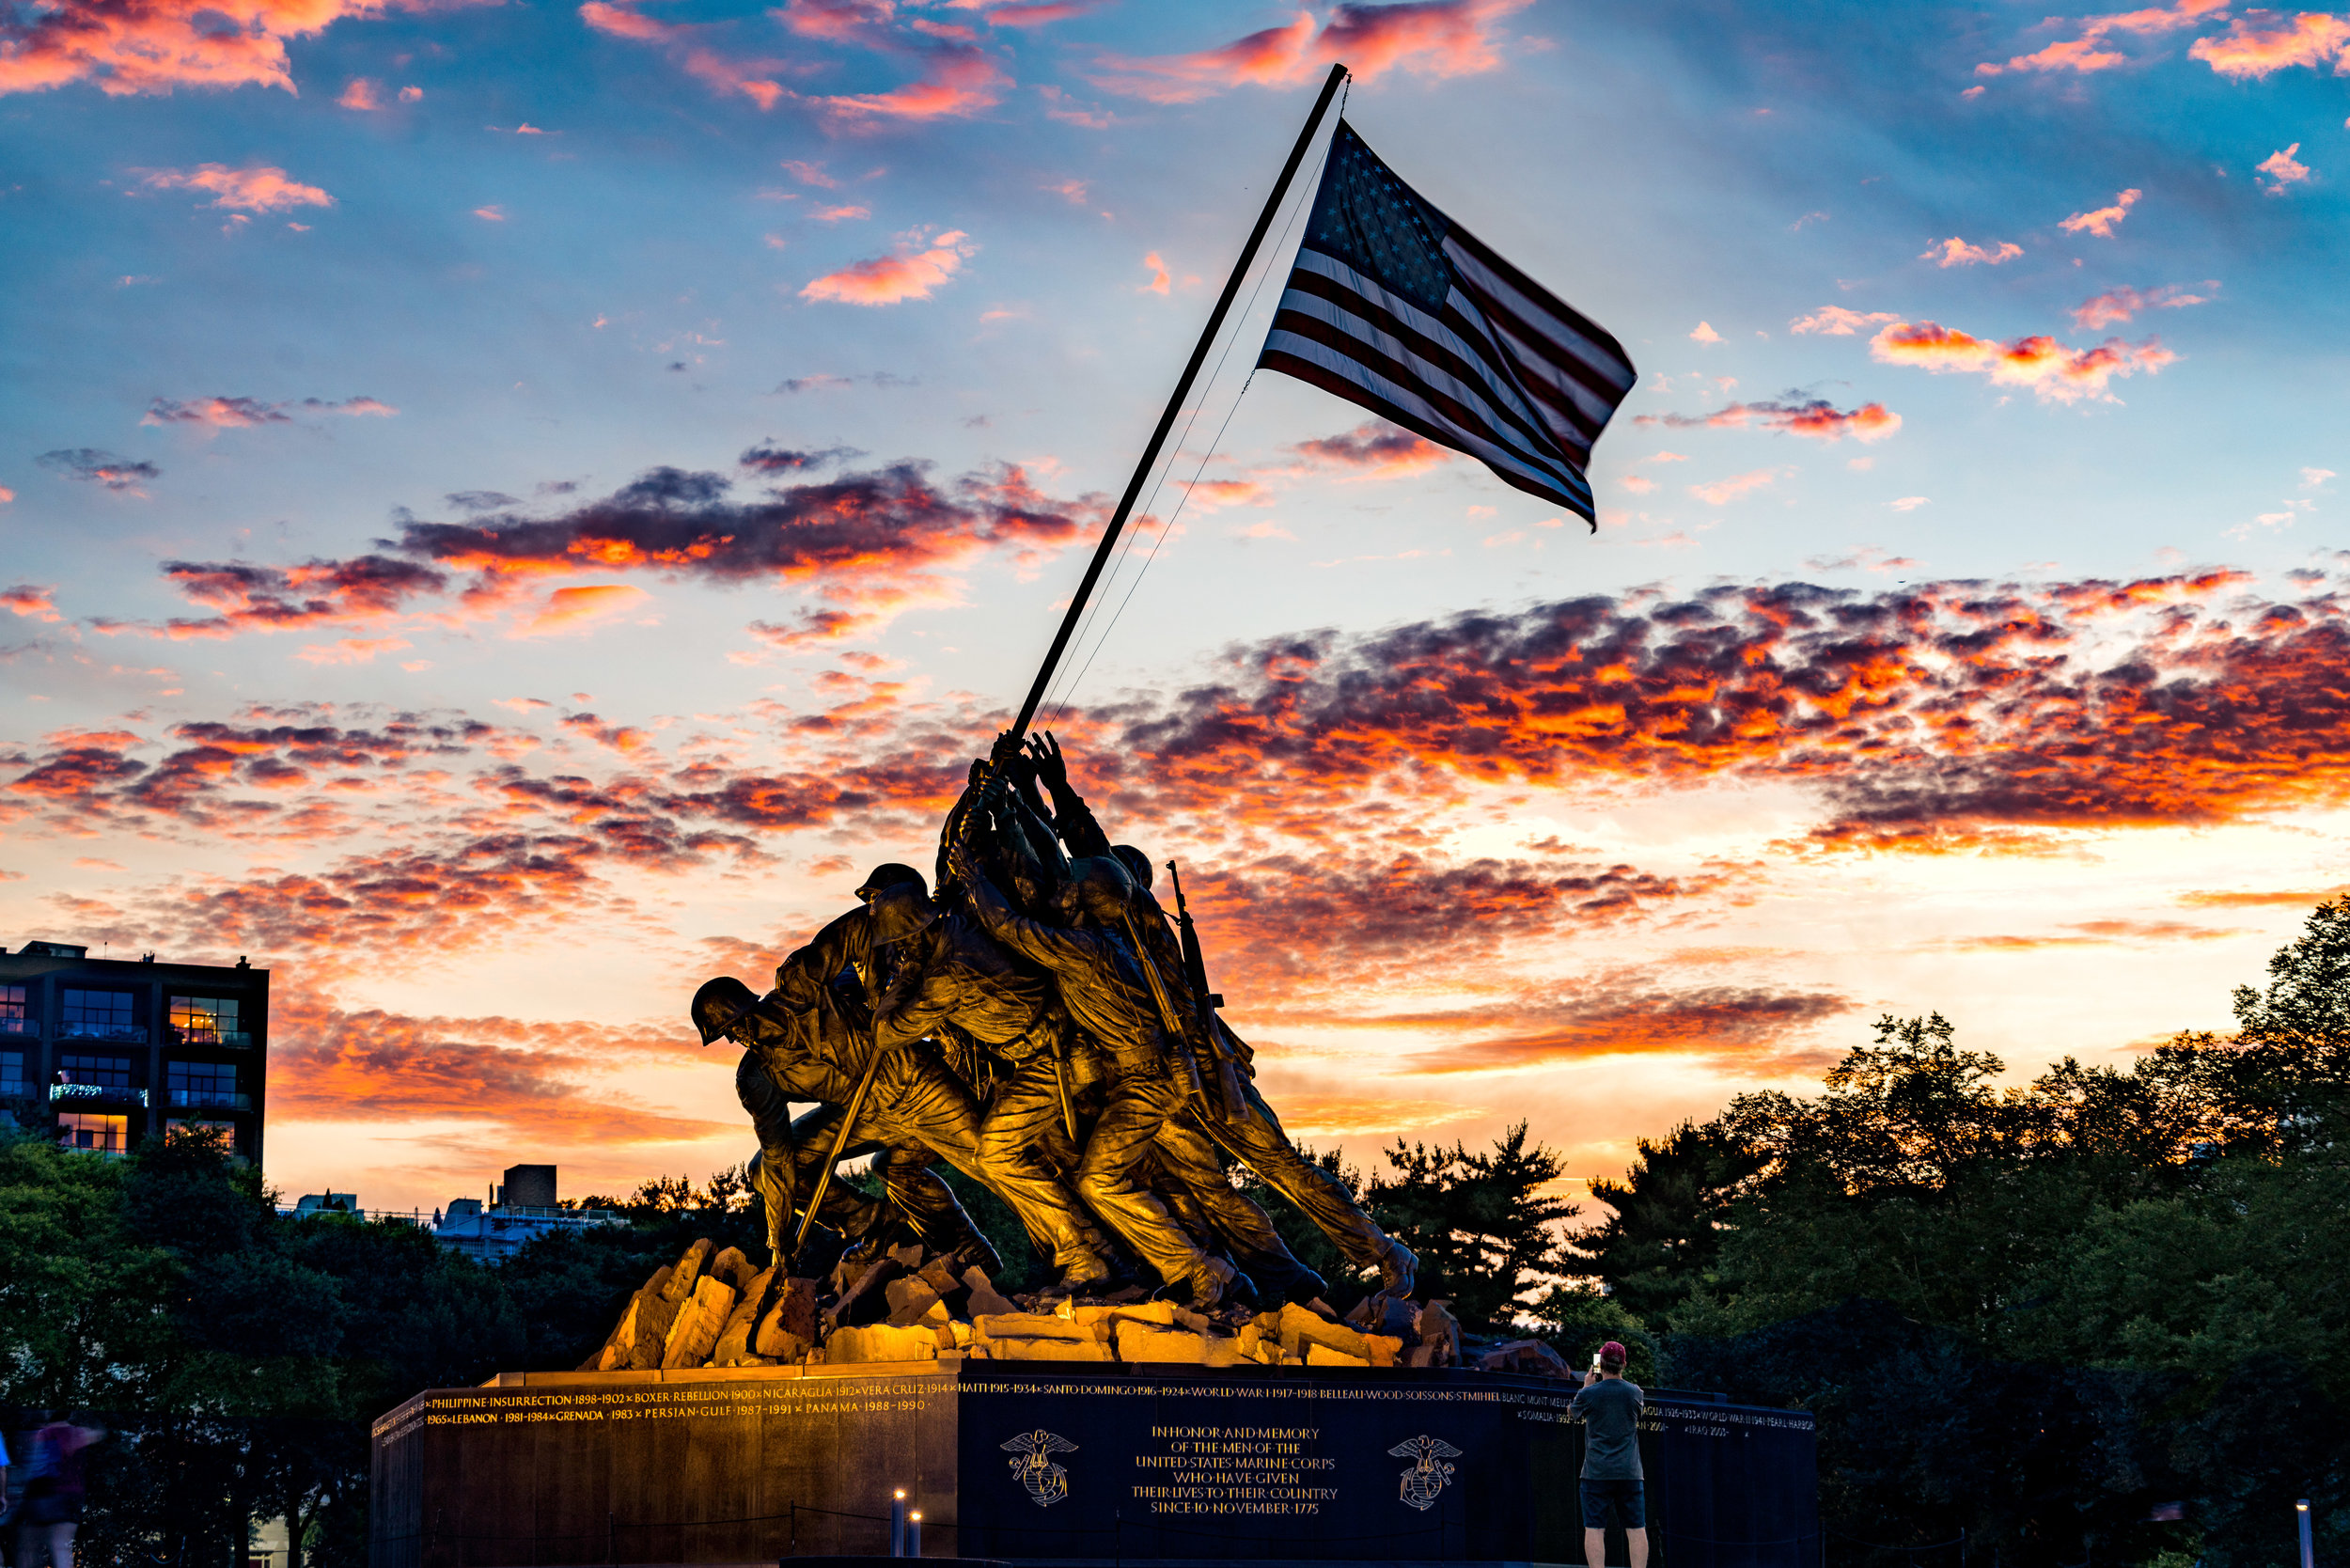 US Marine Corps War Memorial aka Iwo Jima Memorial at sunset